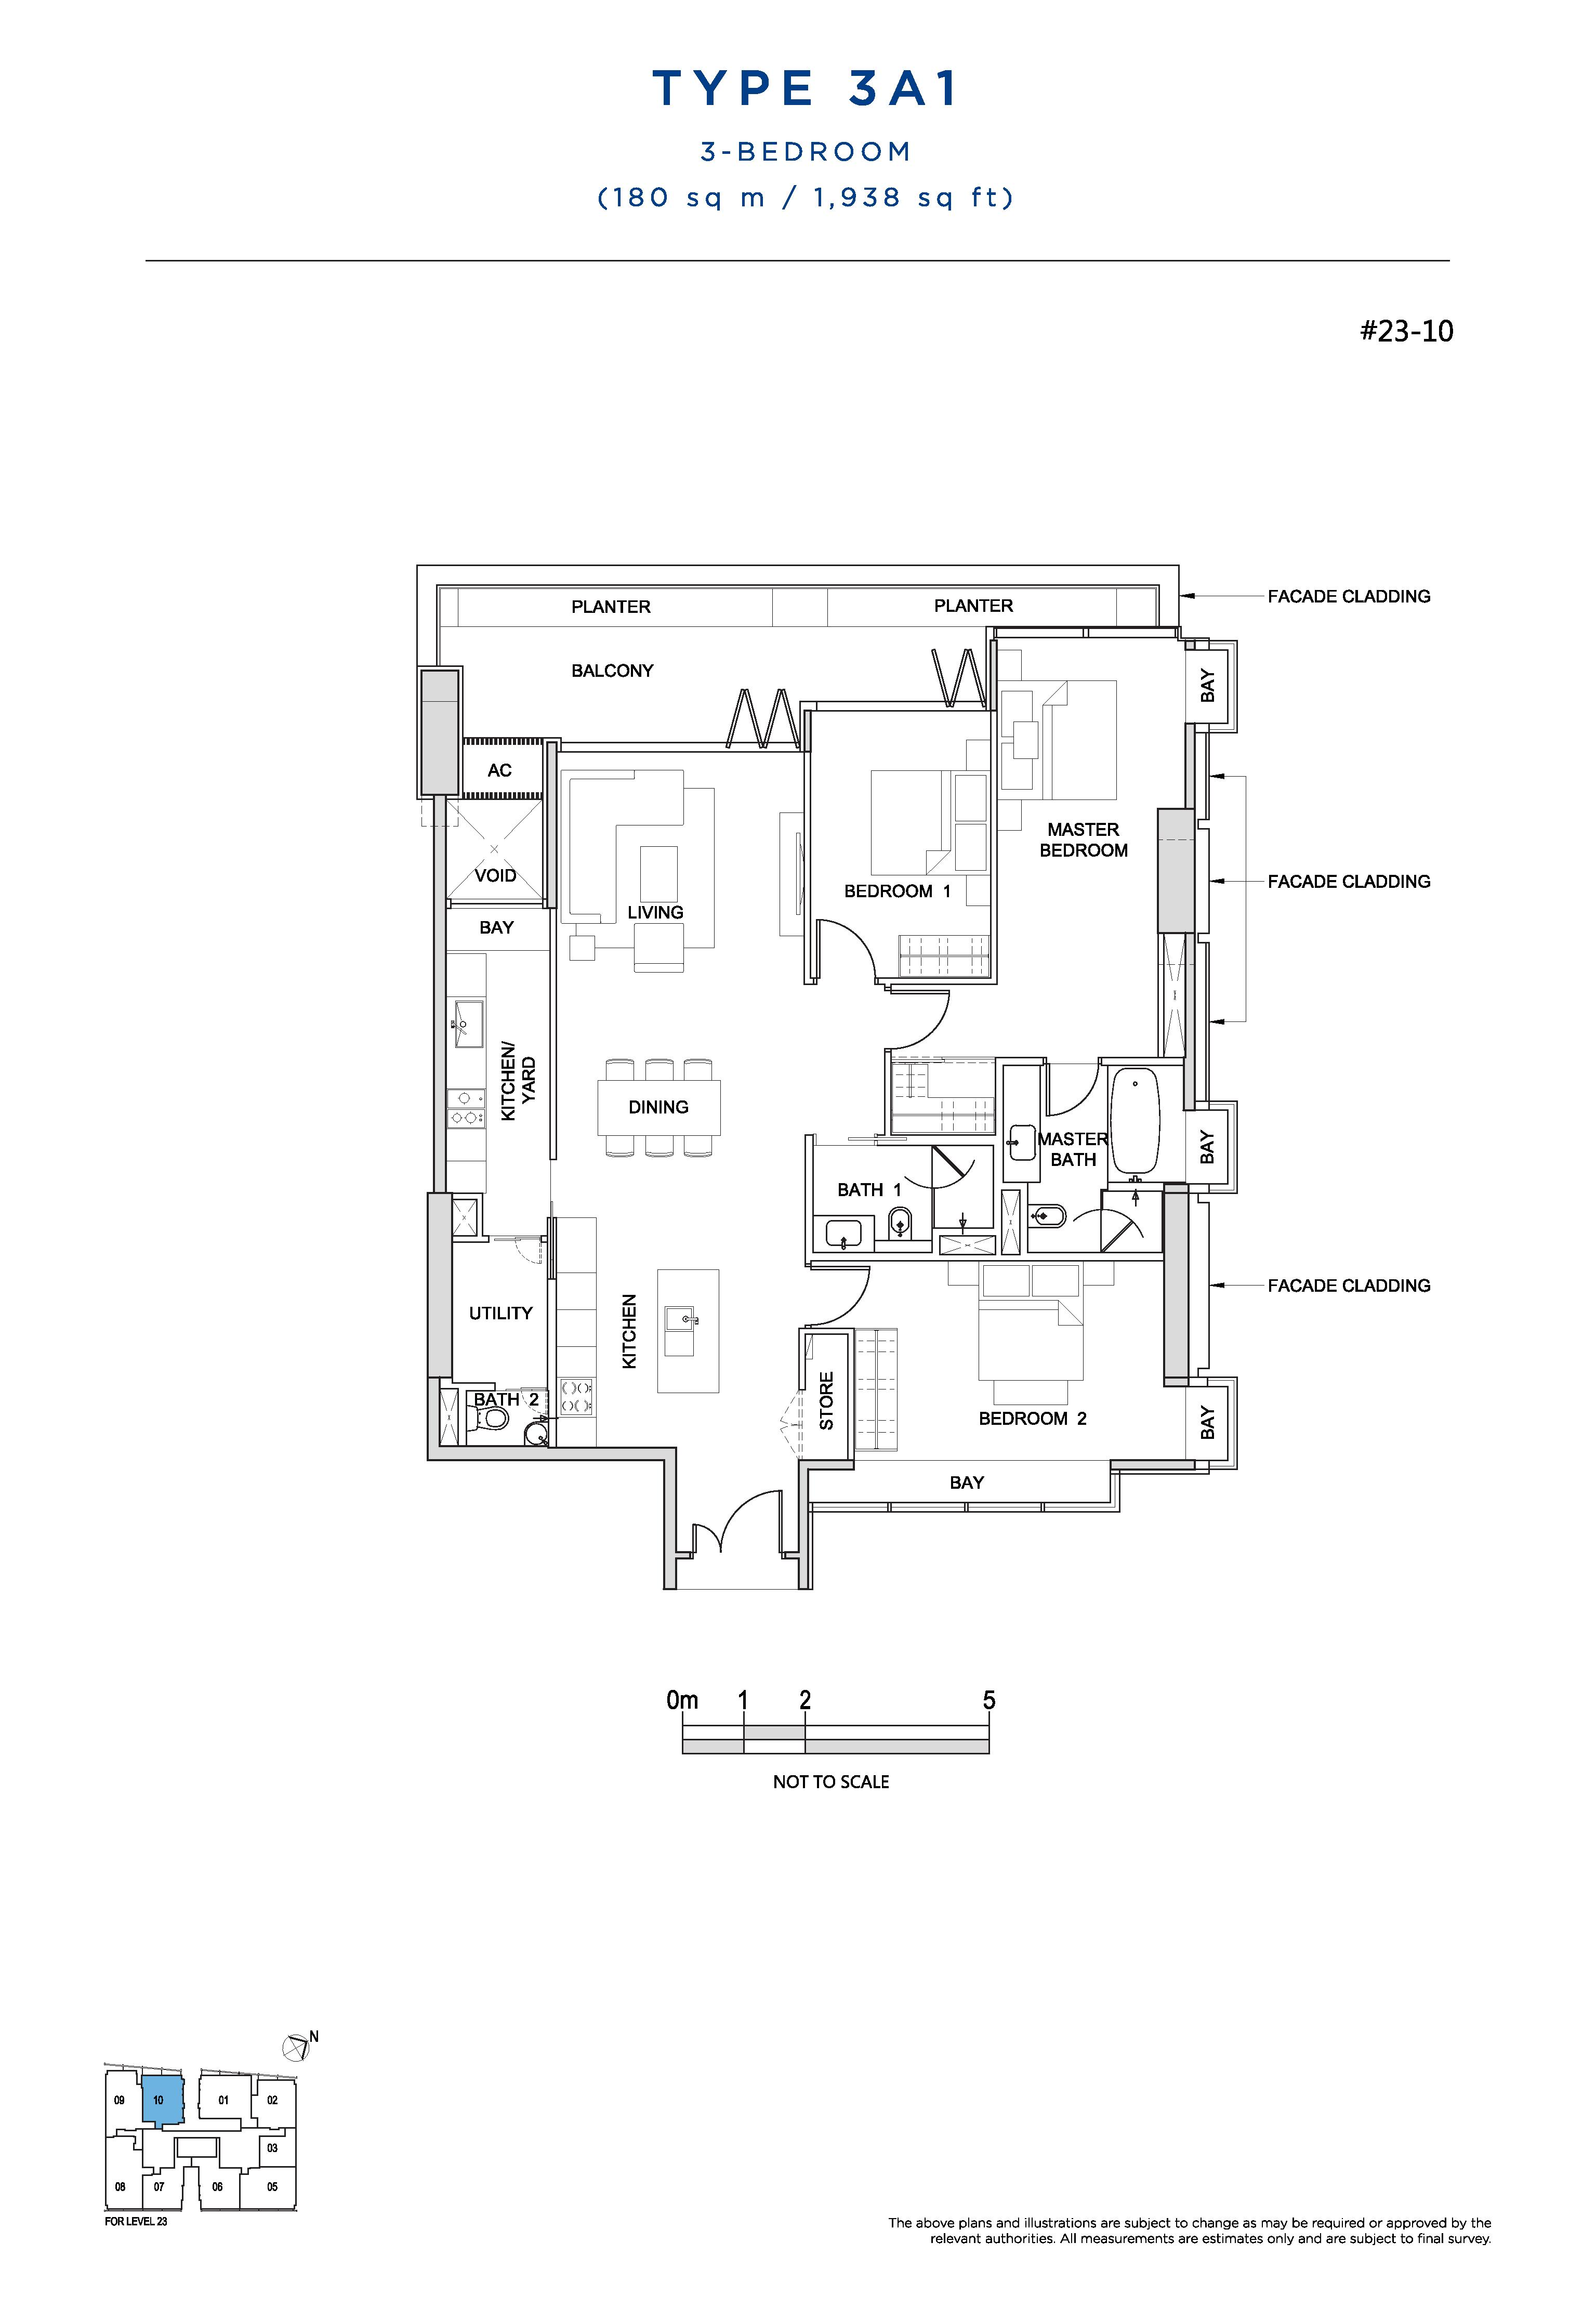 South Beach Residences 3 Bedroom Floor Plans Type 3A1